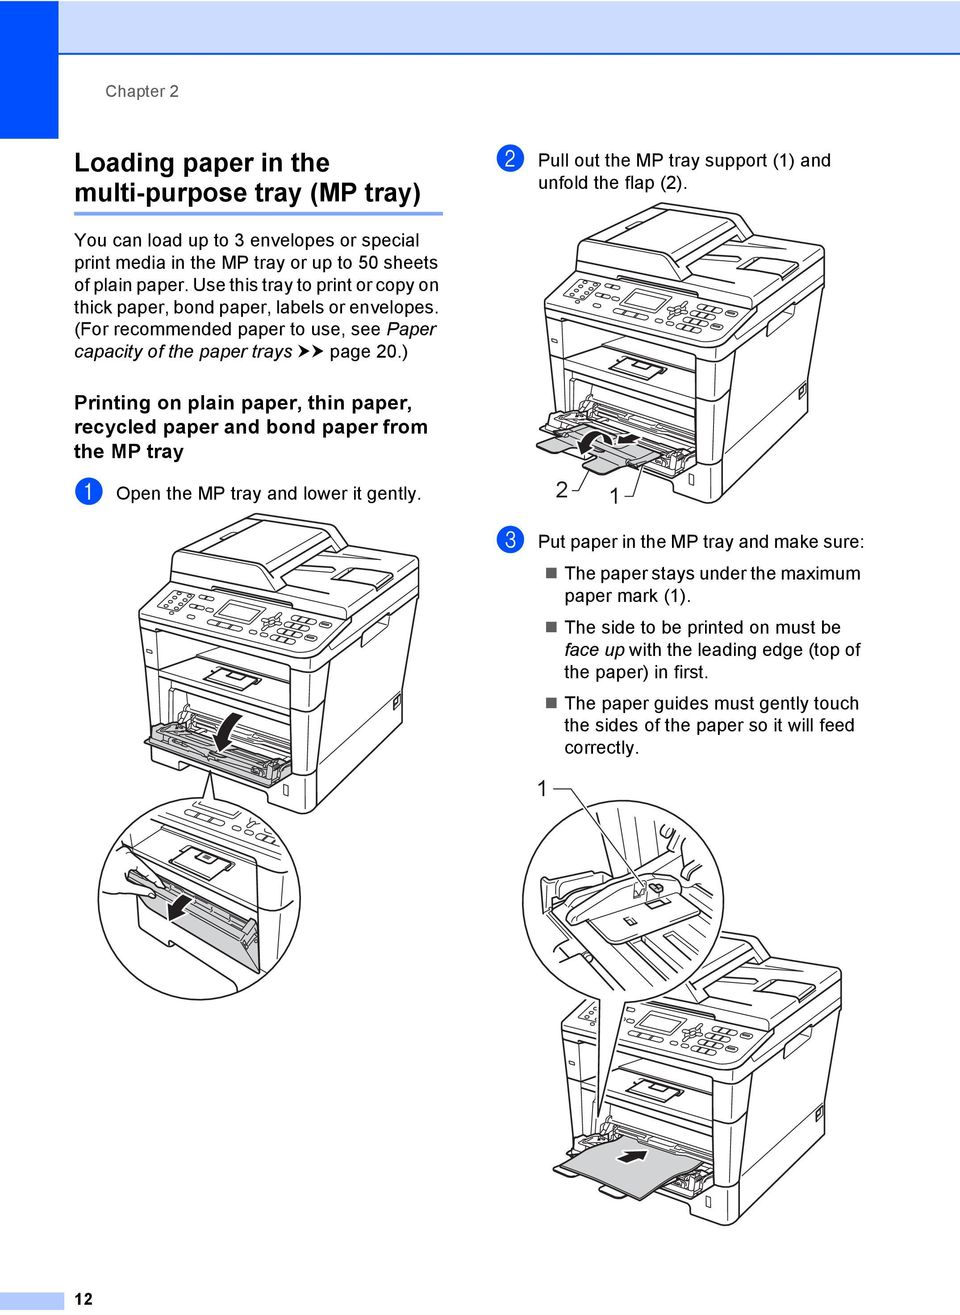 (For recommended paper to use, see Paper capacity of the paper trays uu page 20.